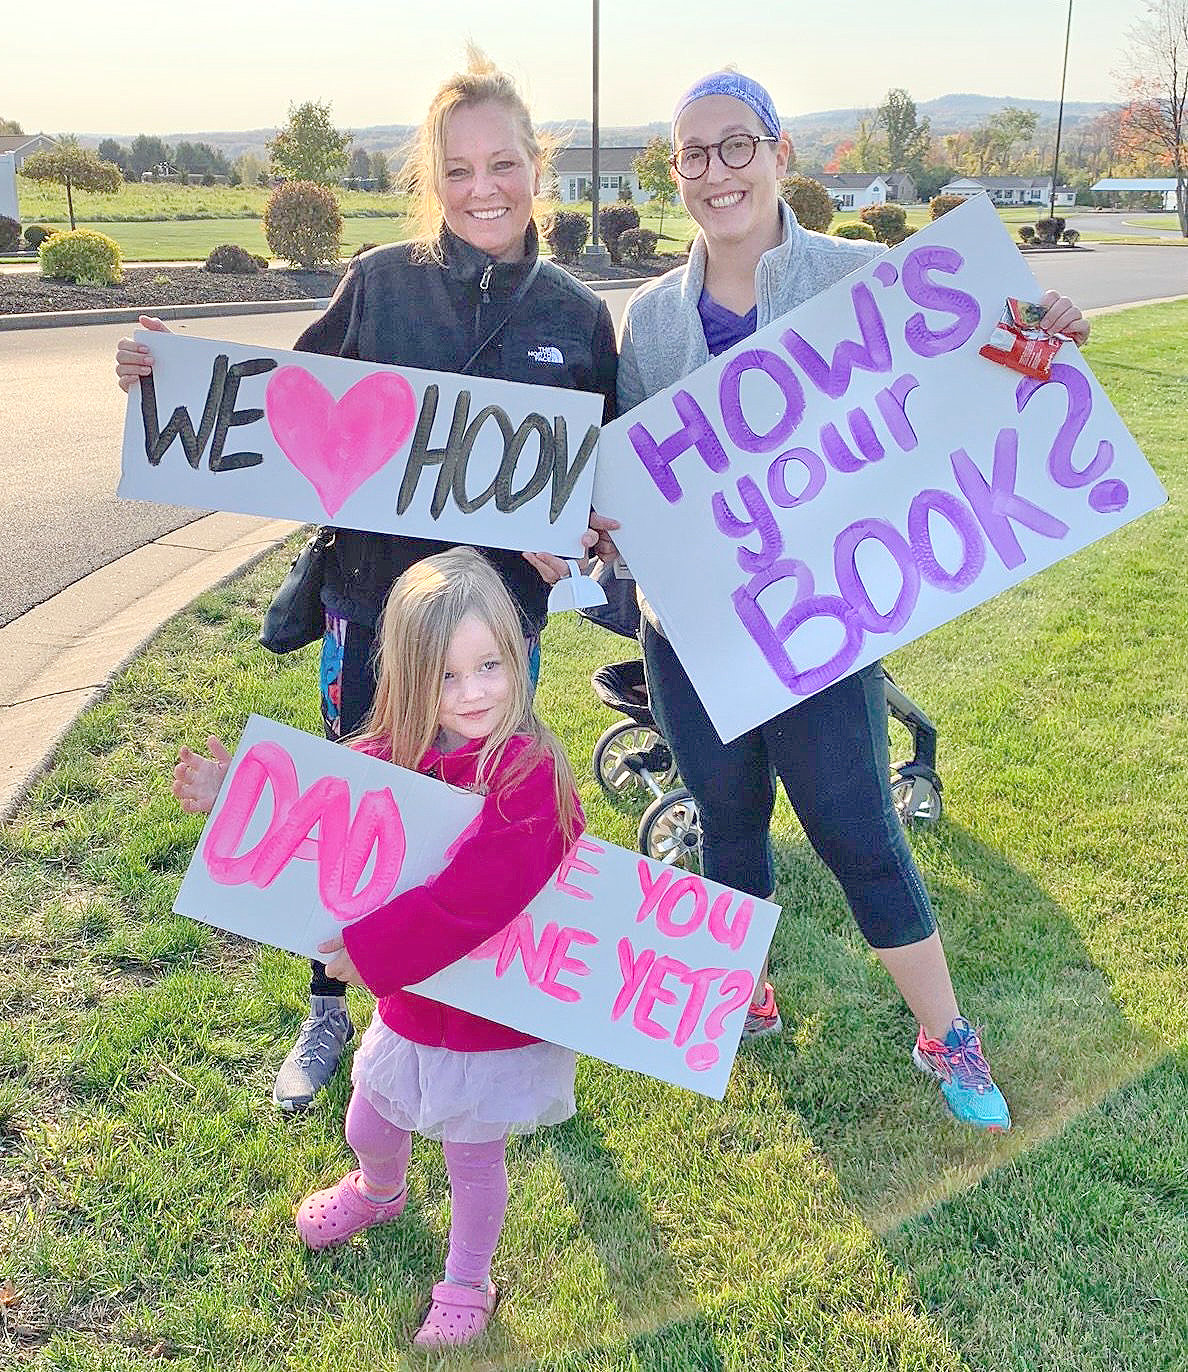 GIVING THEIR SUPPORT — Members of the Hoover family were out the morning of Oct. 10 rooting on Mike Hoover, of Clinton, who ran his first virtual marathon while raising money for the Alzheimer's Association.